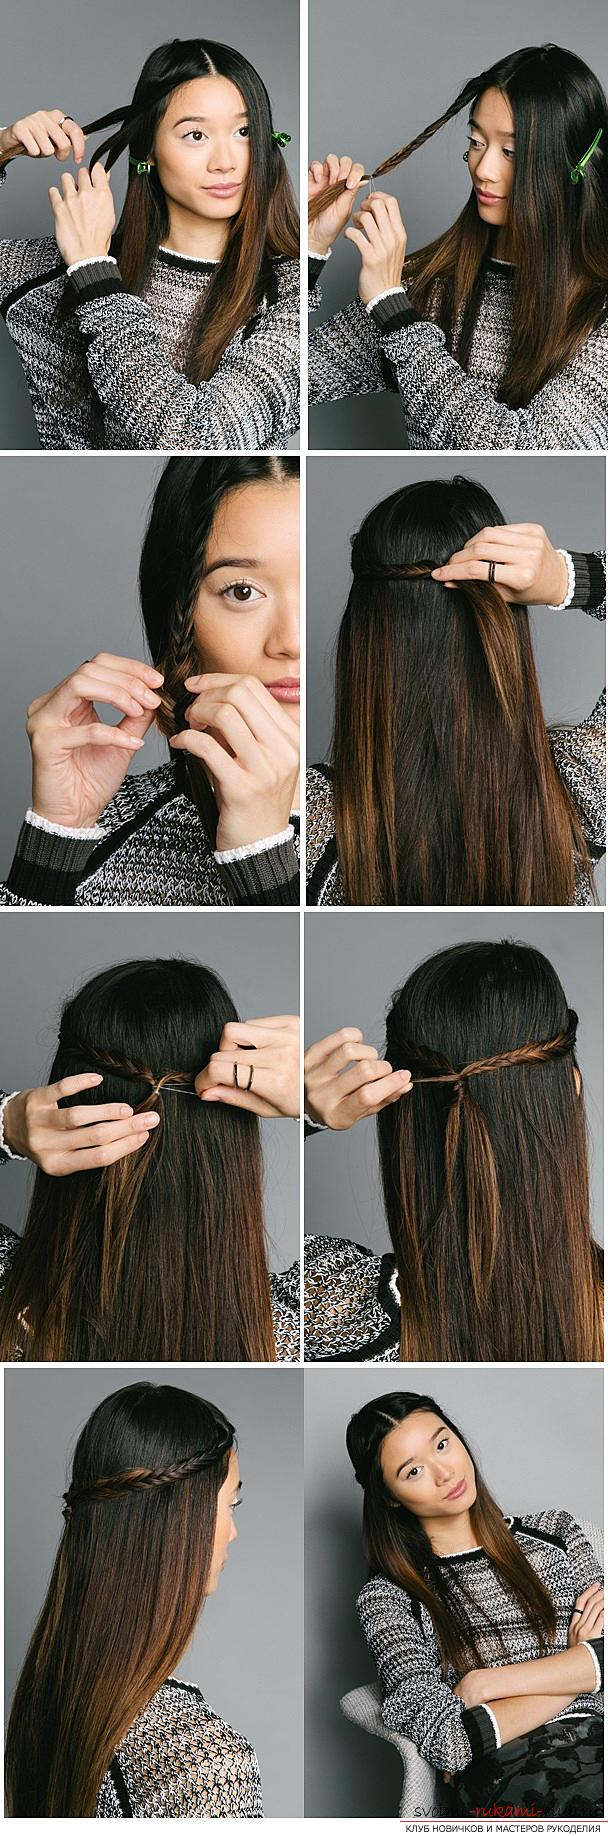 How to beautifully and quickly braid long hair at home with their own hands, step by step photos and description. Photo №1